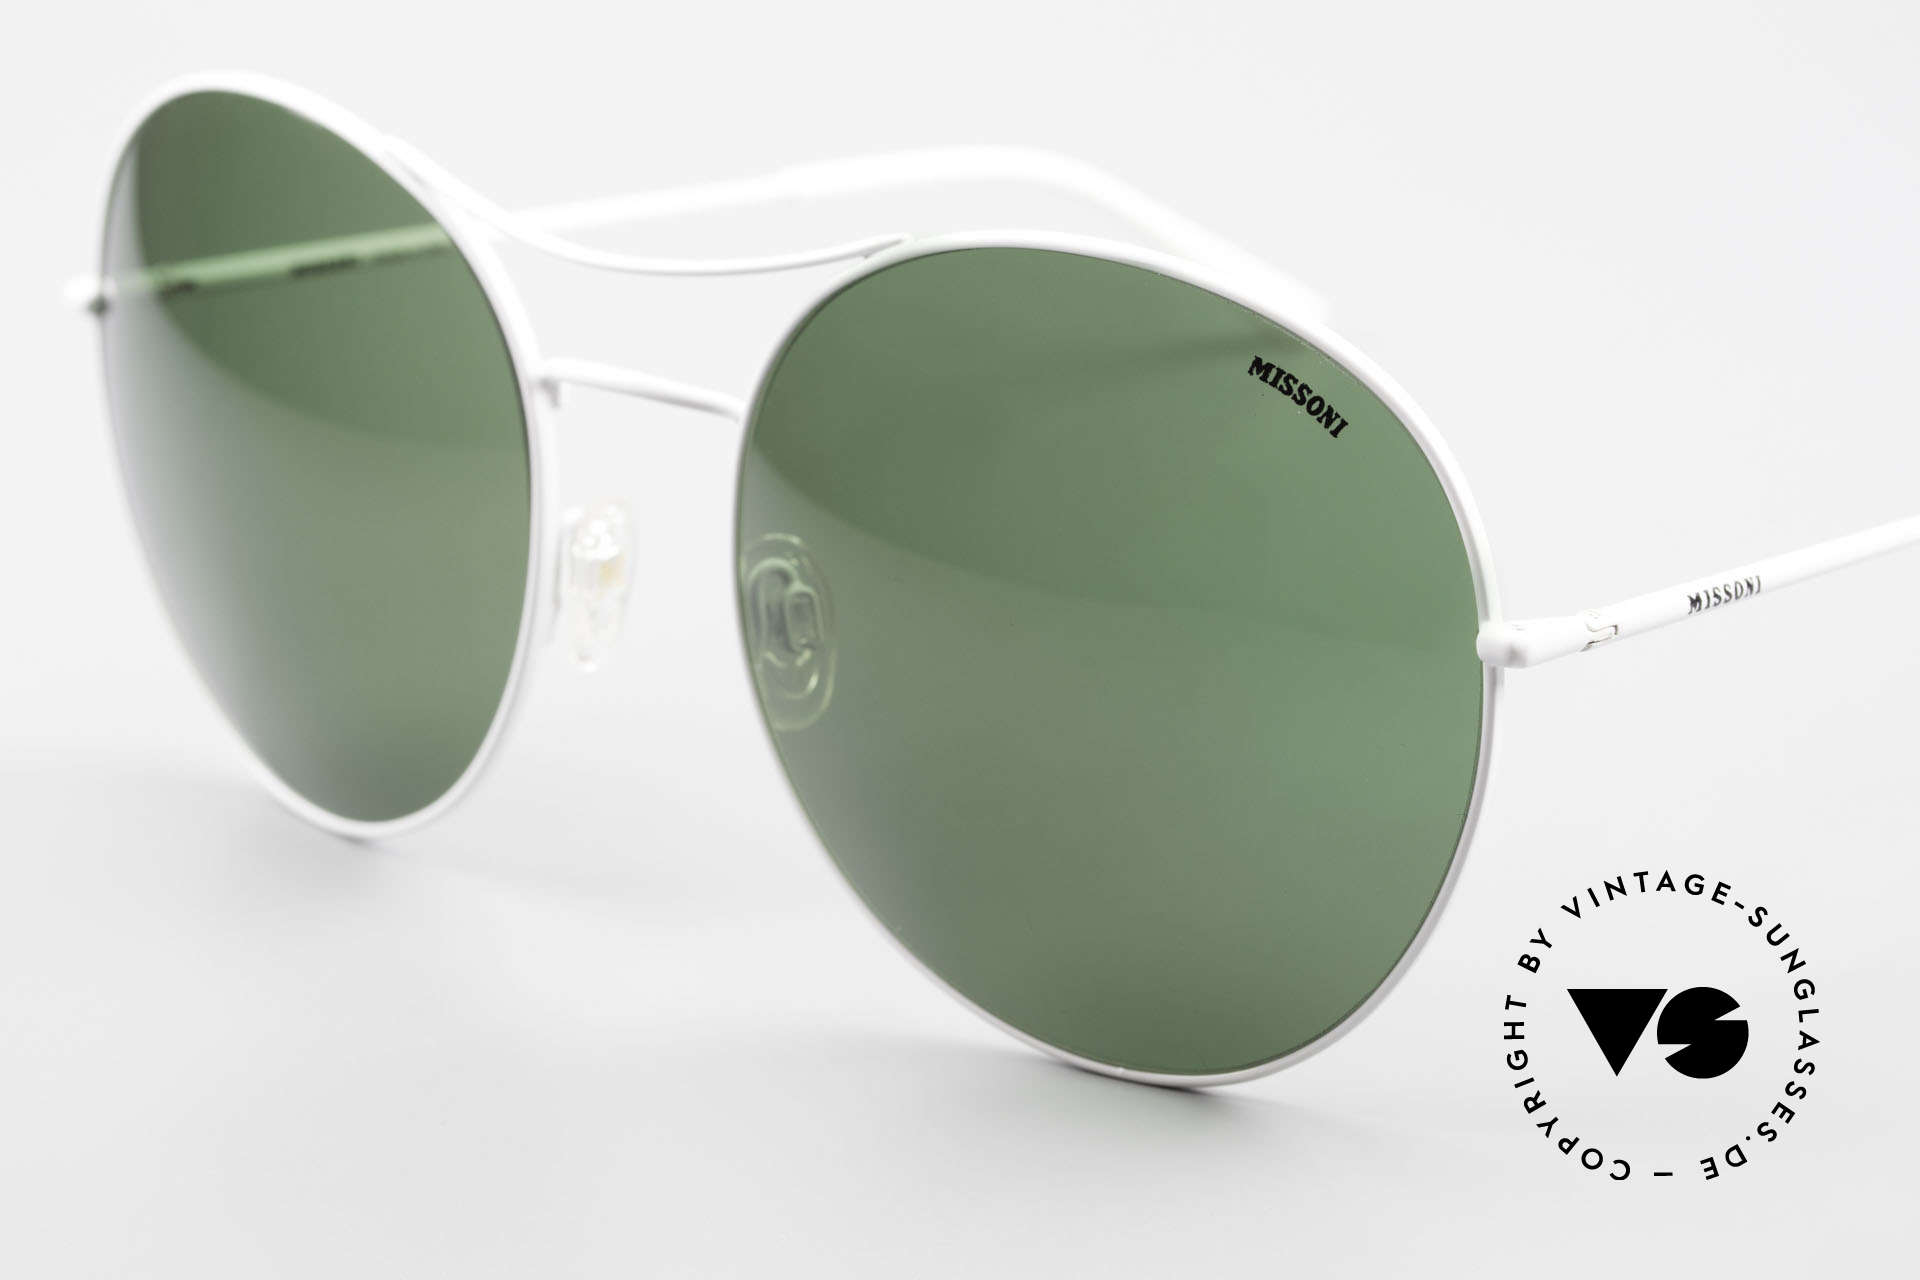 Missoni 0440 Oversized Aviator Sunglasses, grass-green sun lenses (100% UV) with Missoni logo, Made for Men and Women